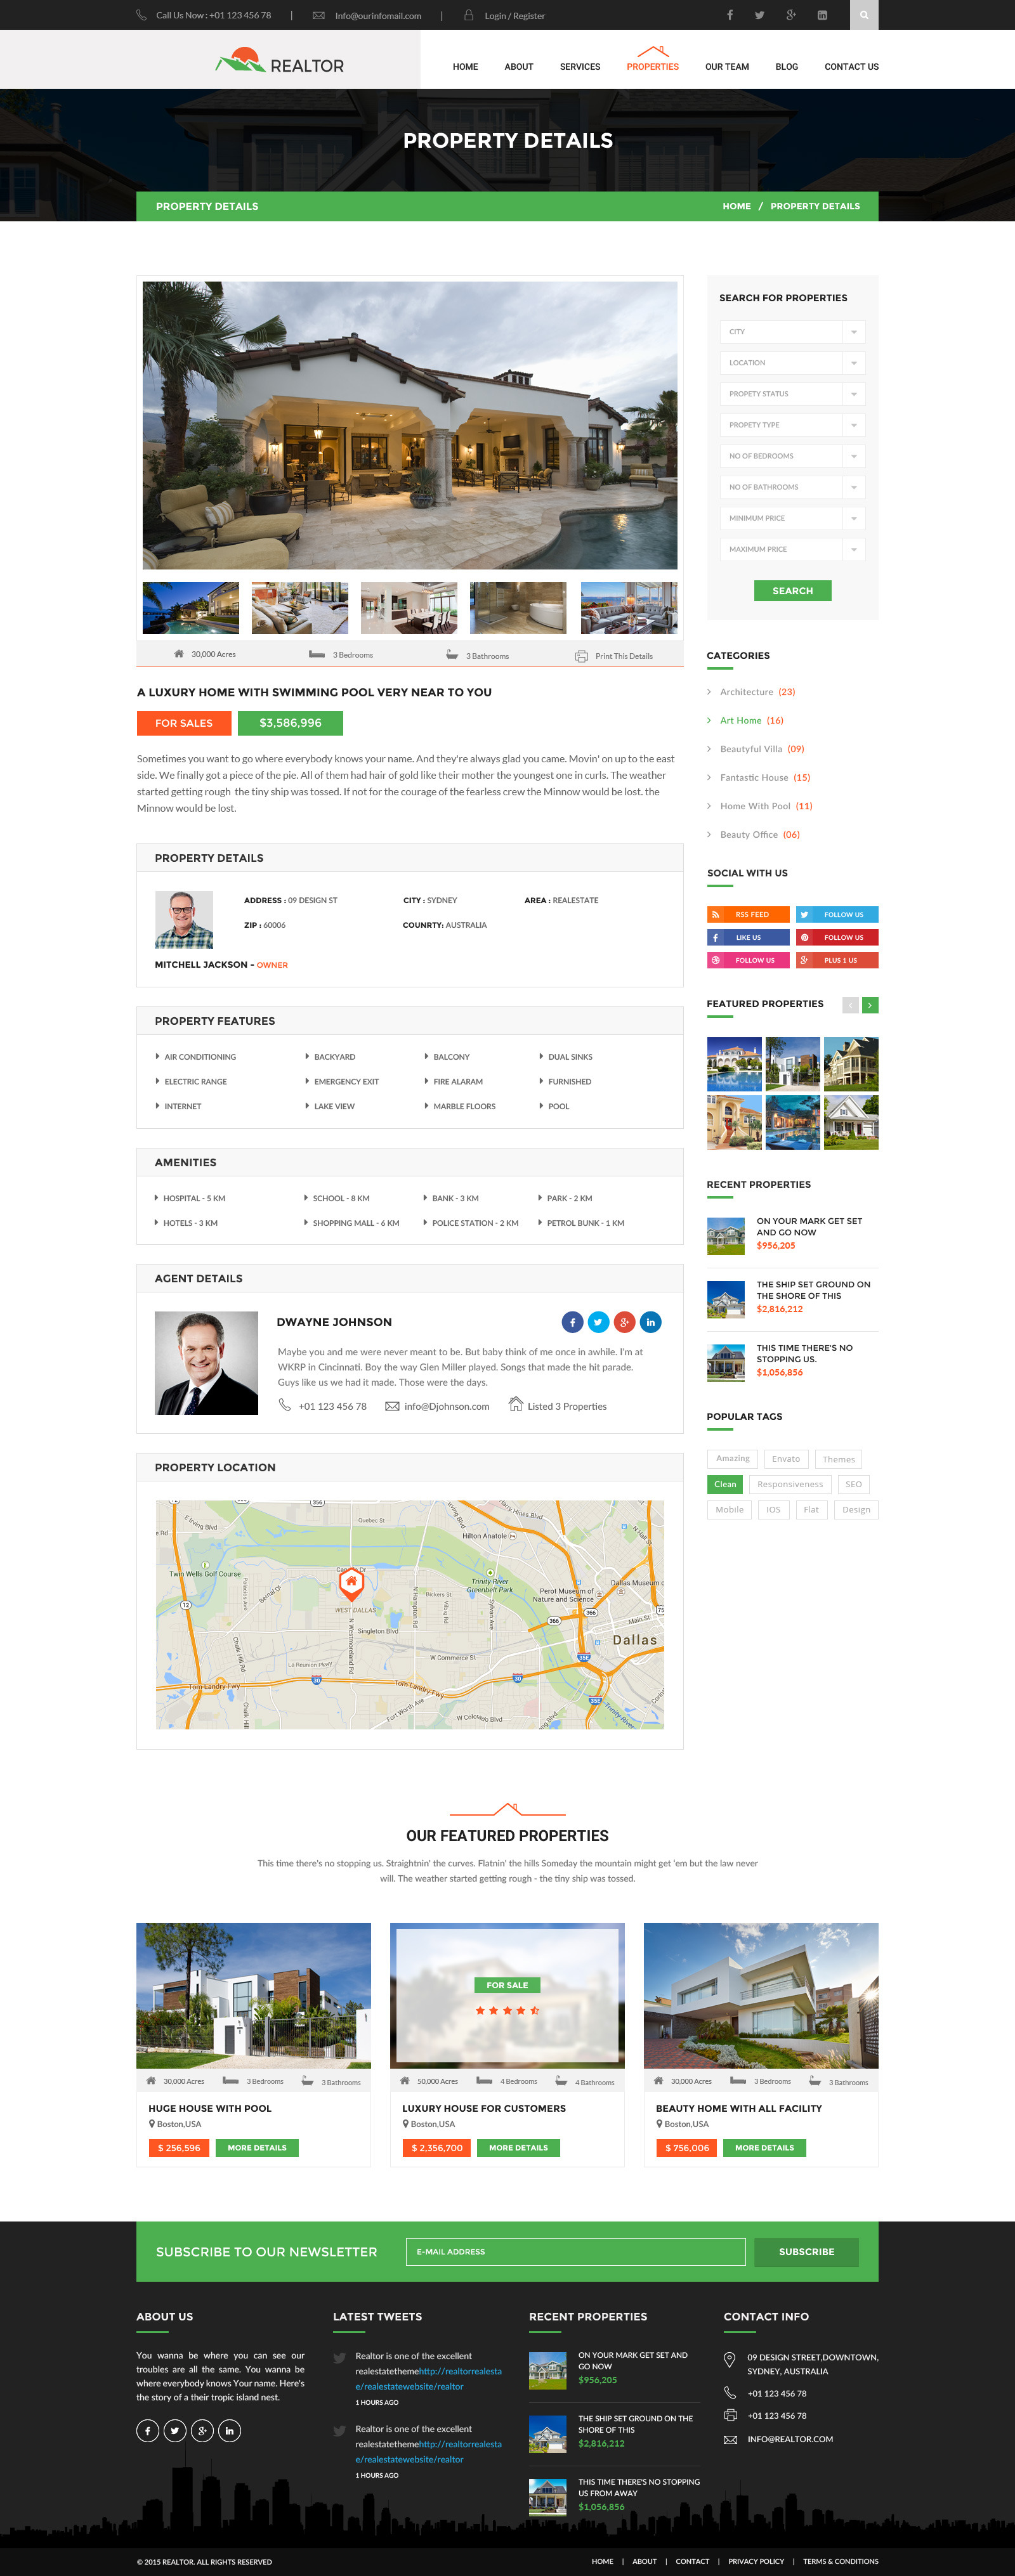 realtor real estate html template by wpmines themeforest screenshots 09 property details jpg